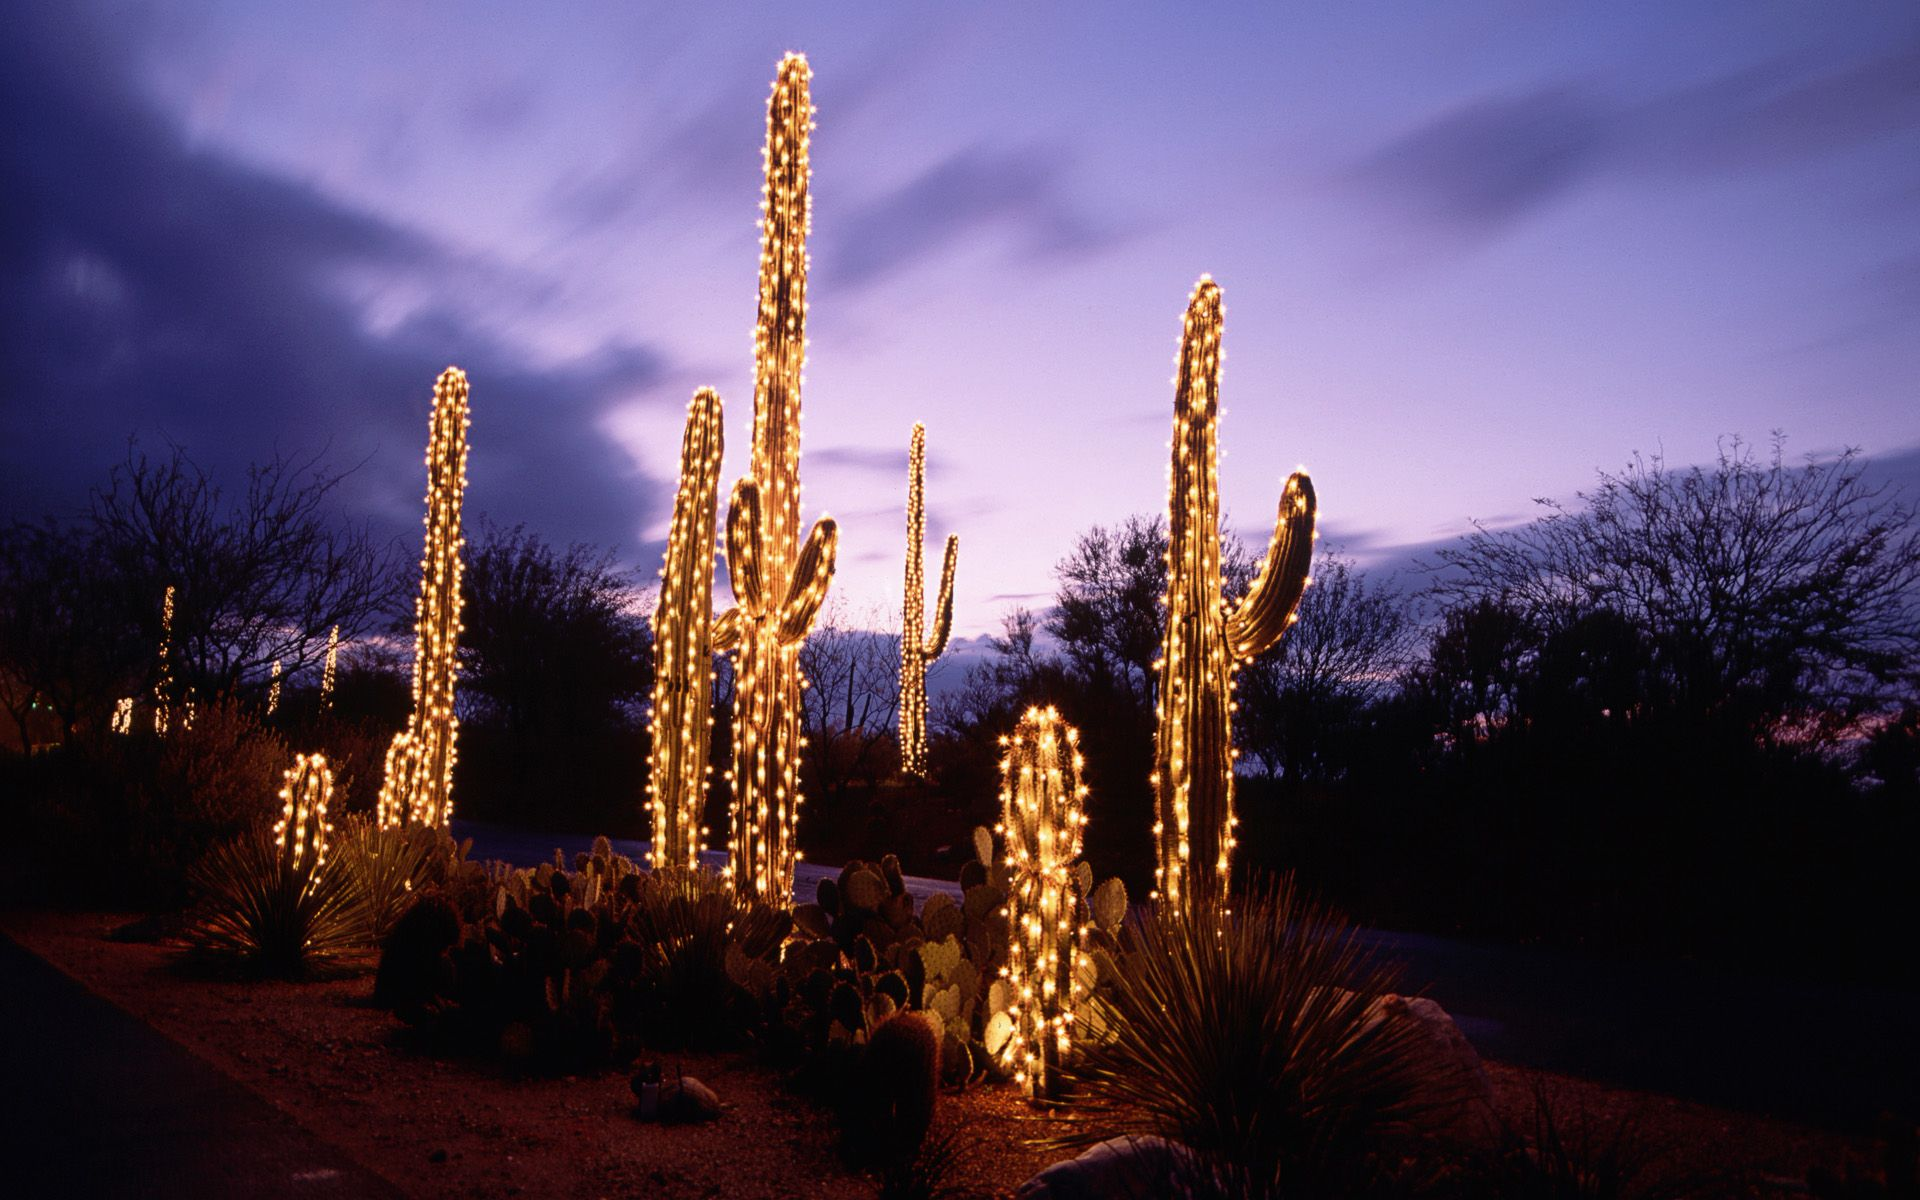 Chrisrmas Holiday Lights Wallpapers   Saguaro Cacti Decorated With Christmas  Lights, Sonoran Desert, Tucson, Arizona, USA Wallpaper 8